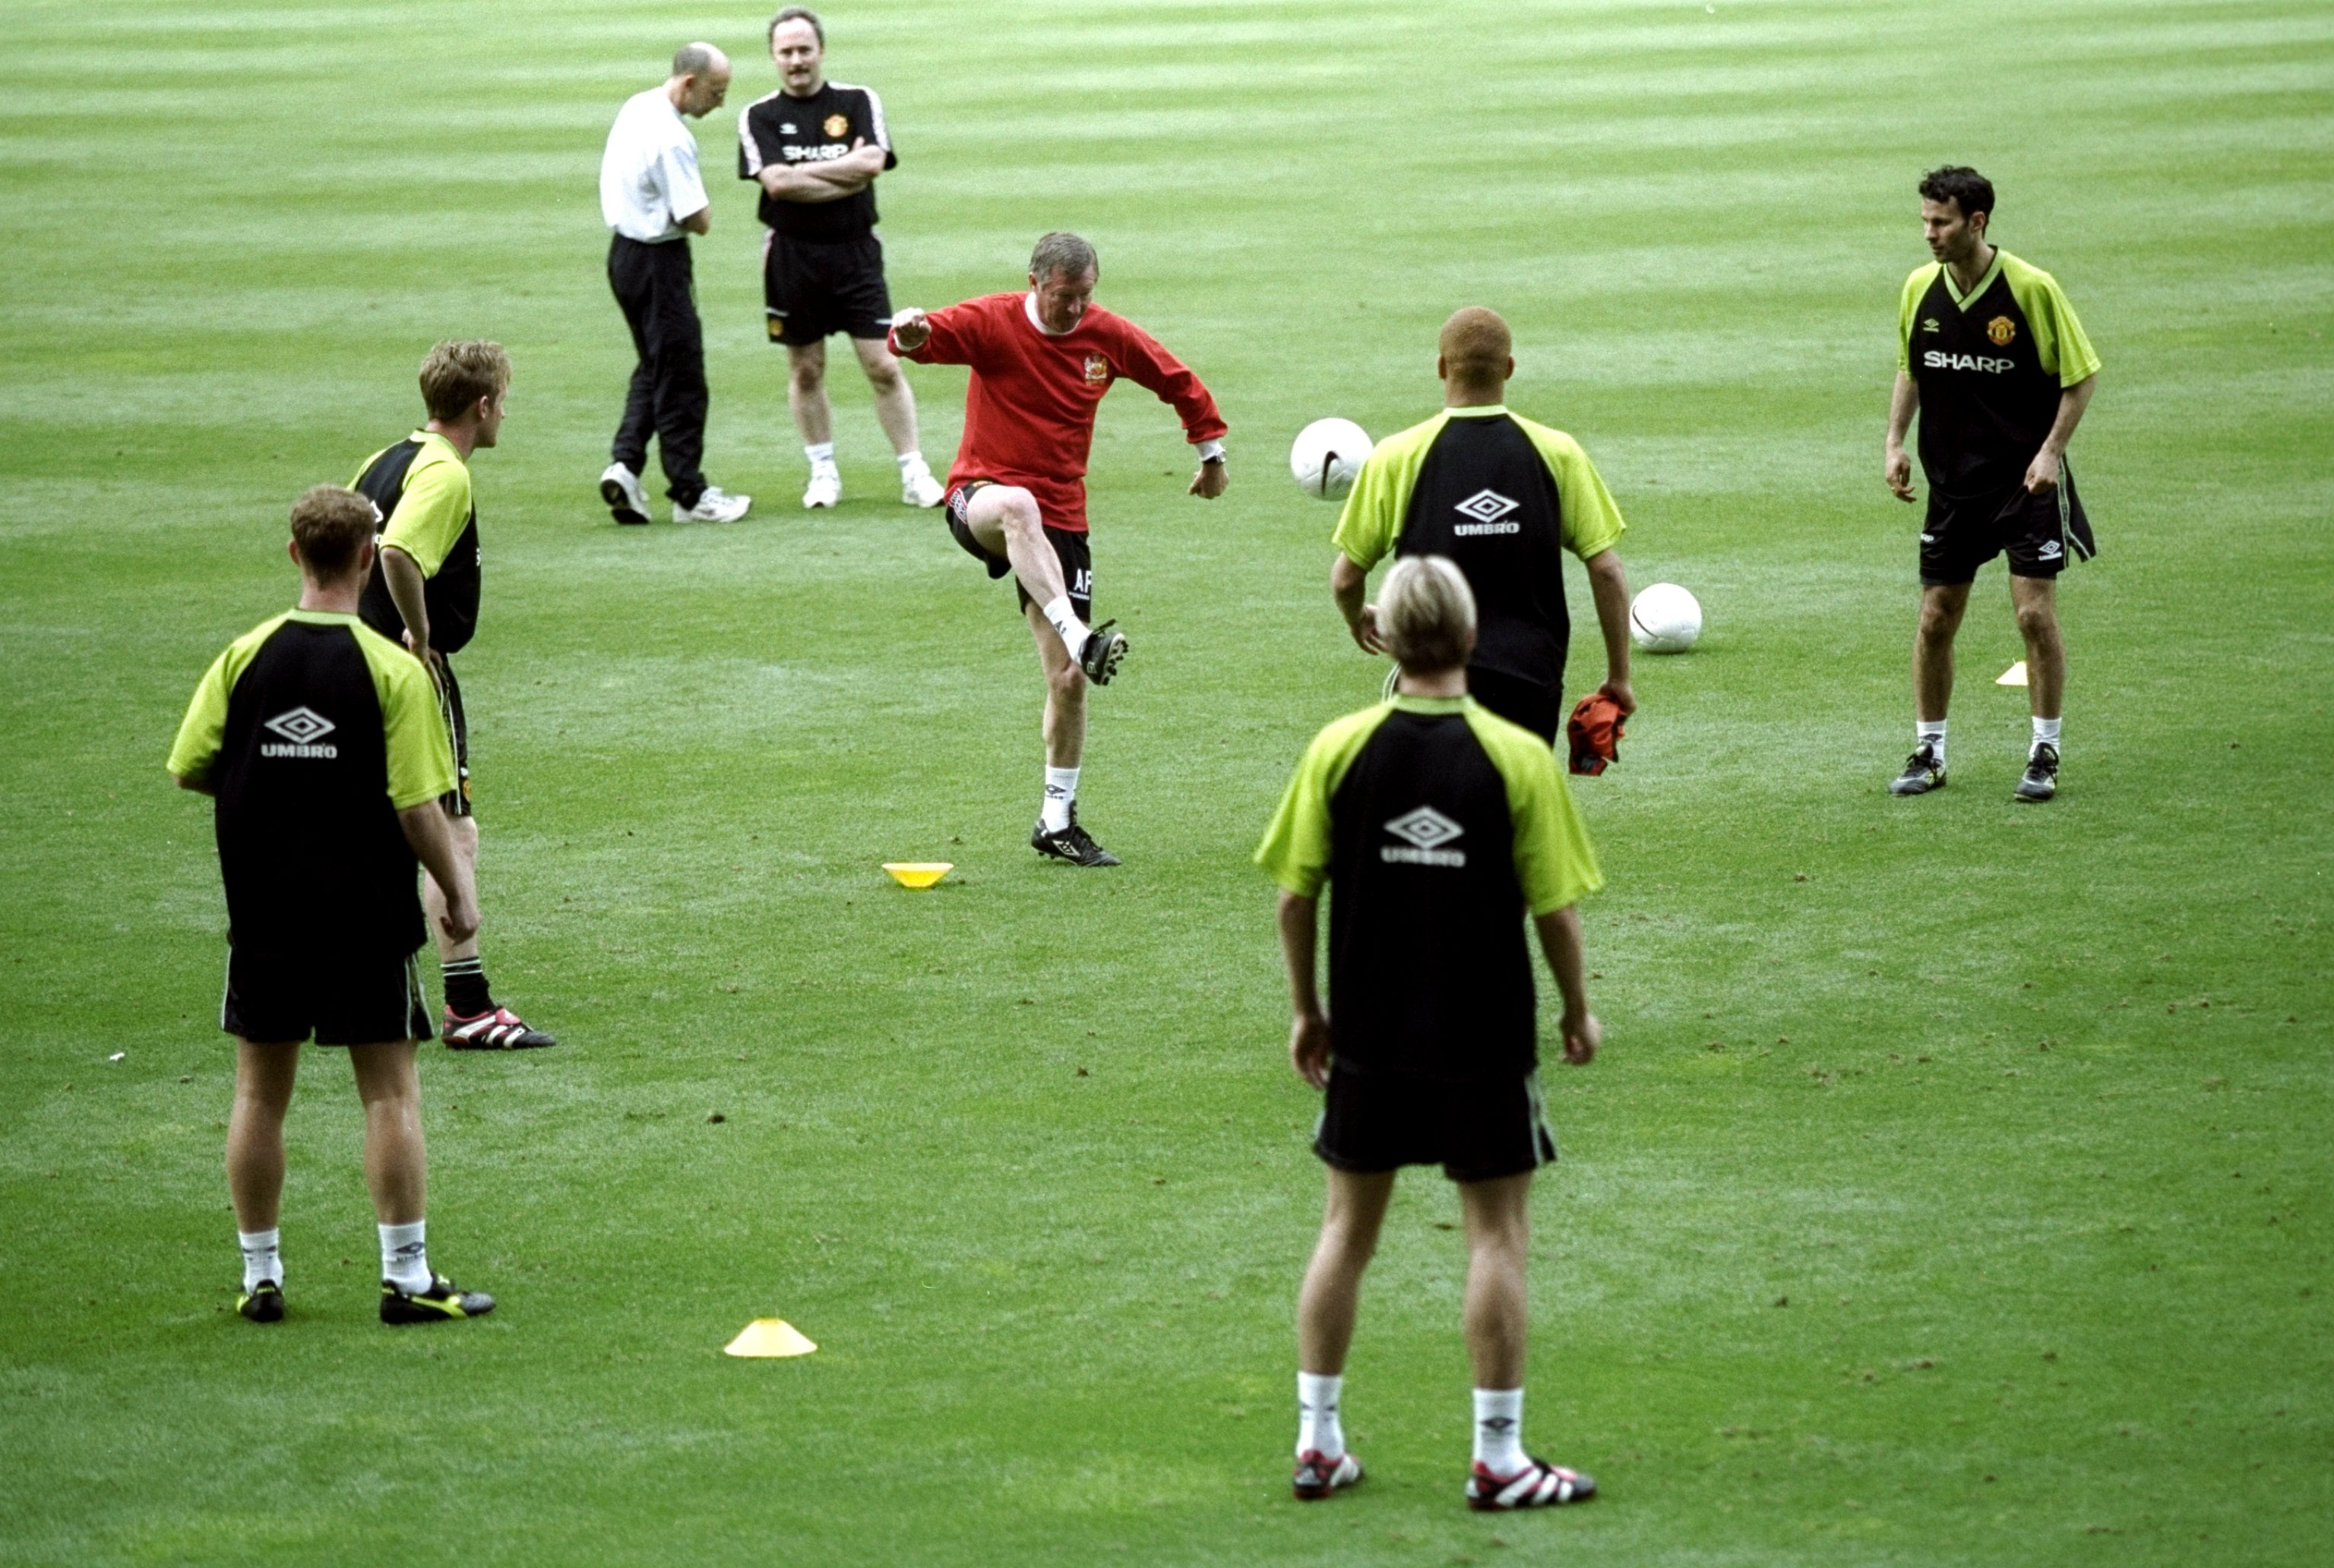 John Curtis training with Manchester United